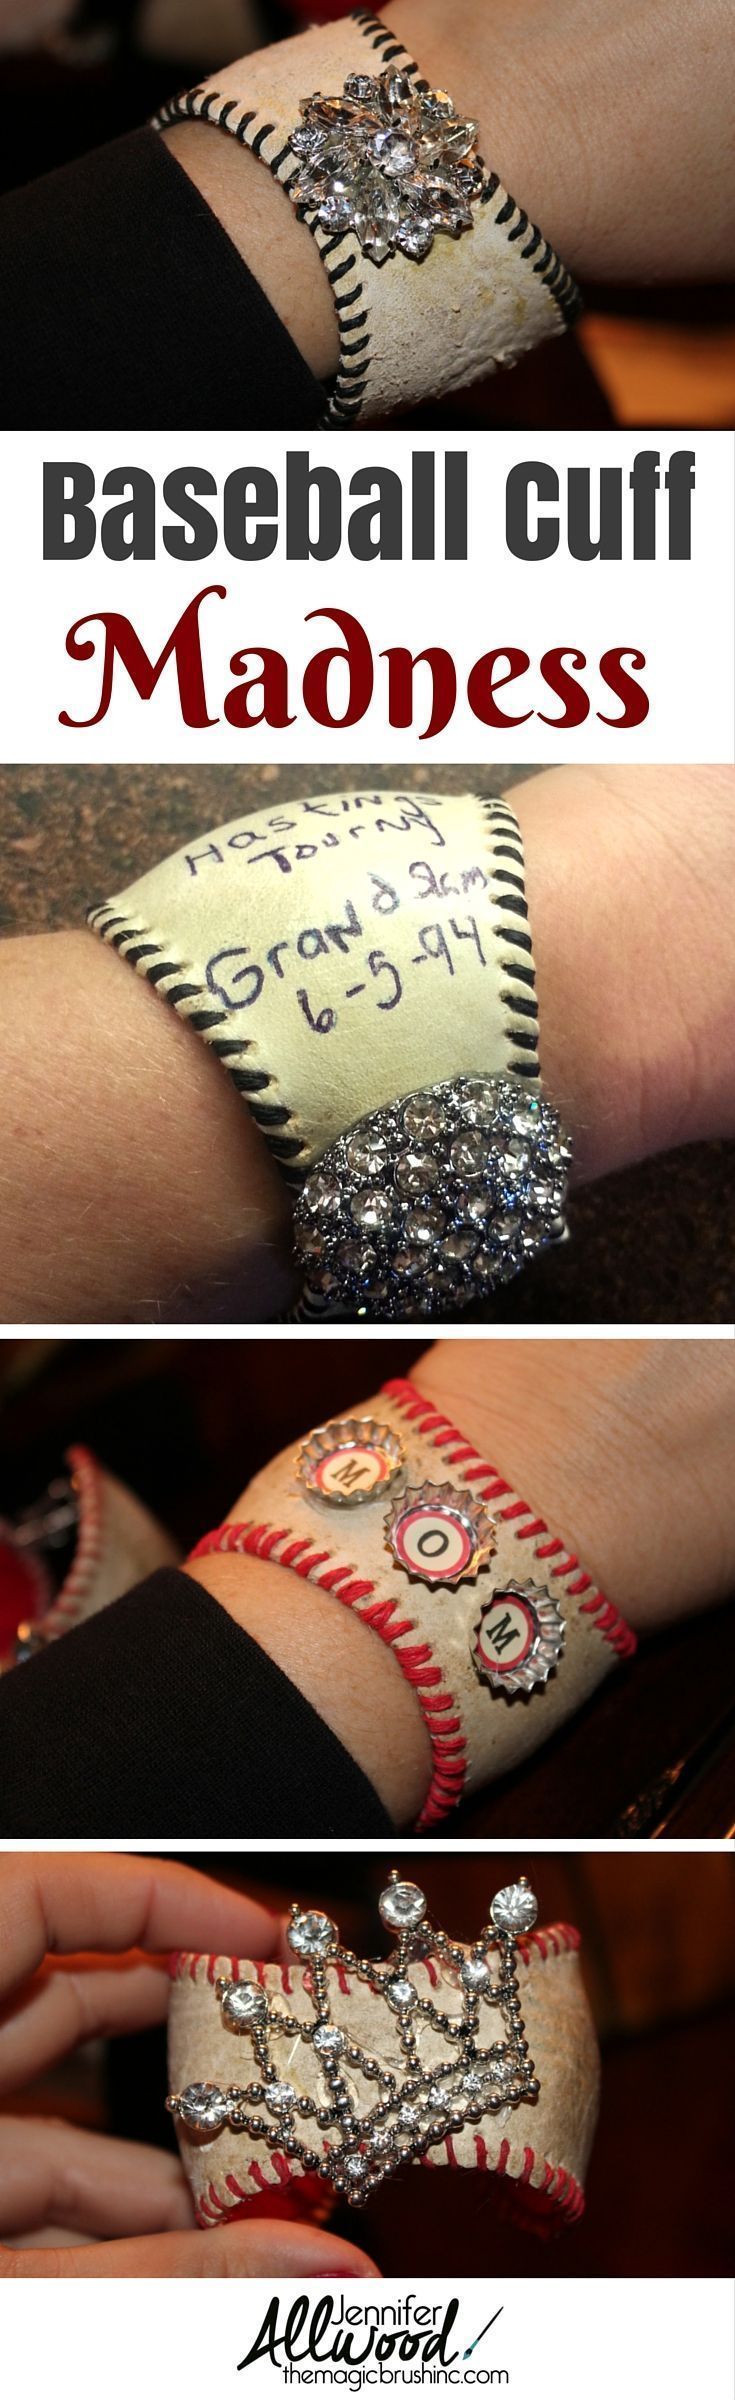 Baseball cuff madness! Add a little bling or turn a momentous game ball into a treasured piece of jewelry!  Great for baseball fans and basemall moms! More DIY projects at theMagicBrushinc.com #baseballmom #crafts #moms #diy